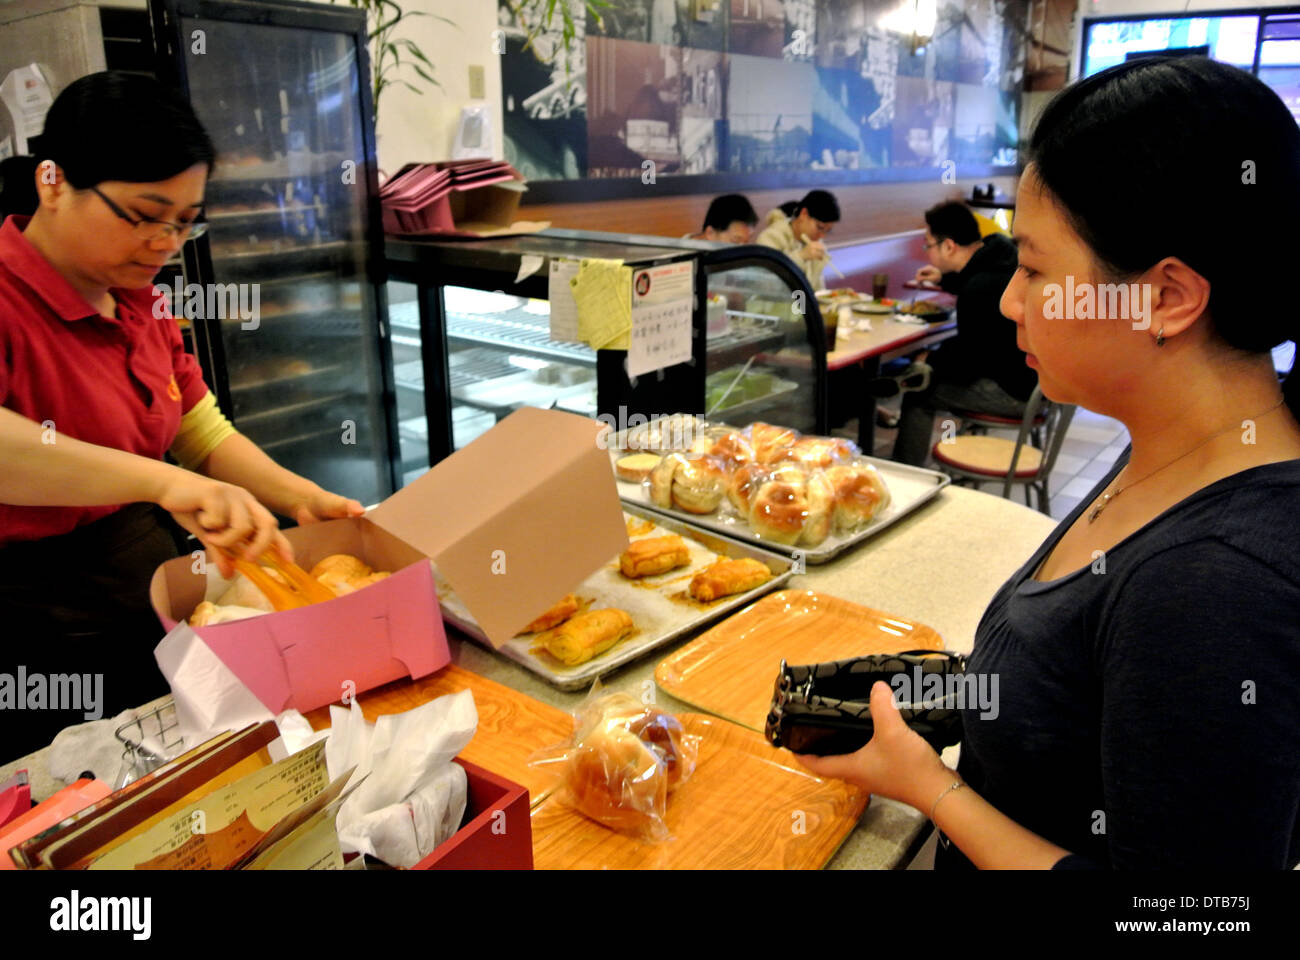 retail clerk packs pastries in box in chinatown restaurant - Stock Image